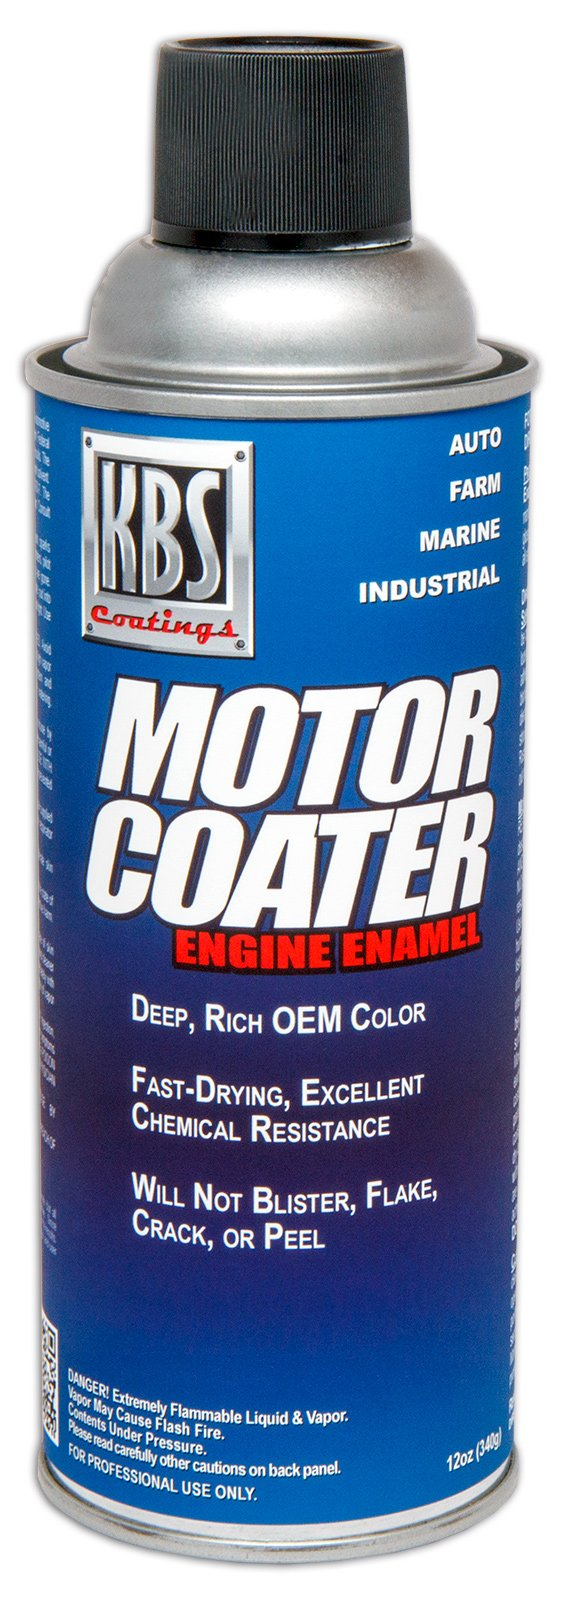 KBS Coatings 60106 Pontiac Metallic Blue Motor Coater Engine Paint - 12 fl. oz. by KBS Coatings